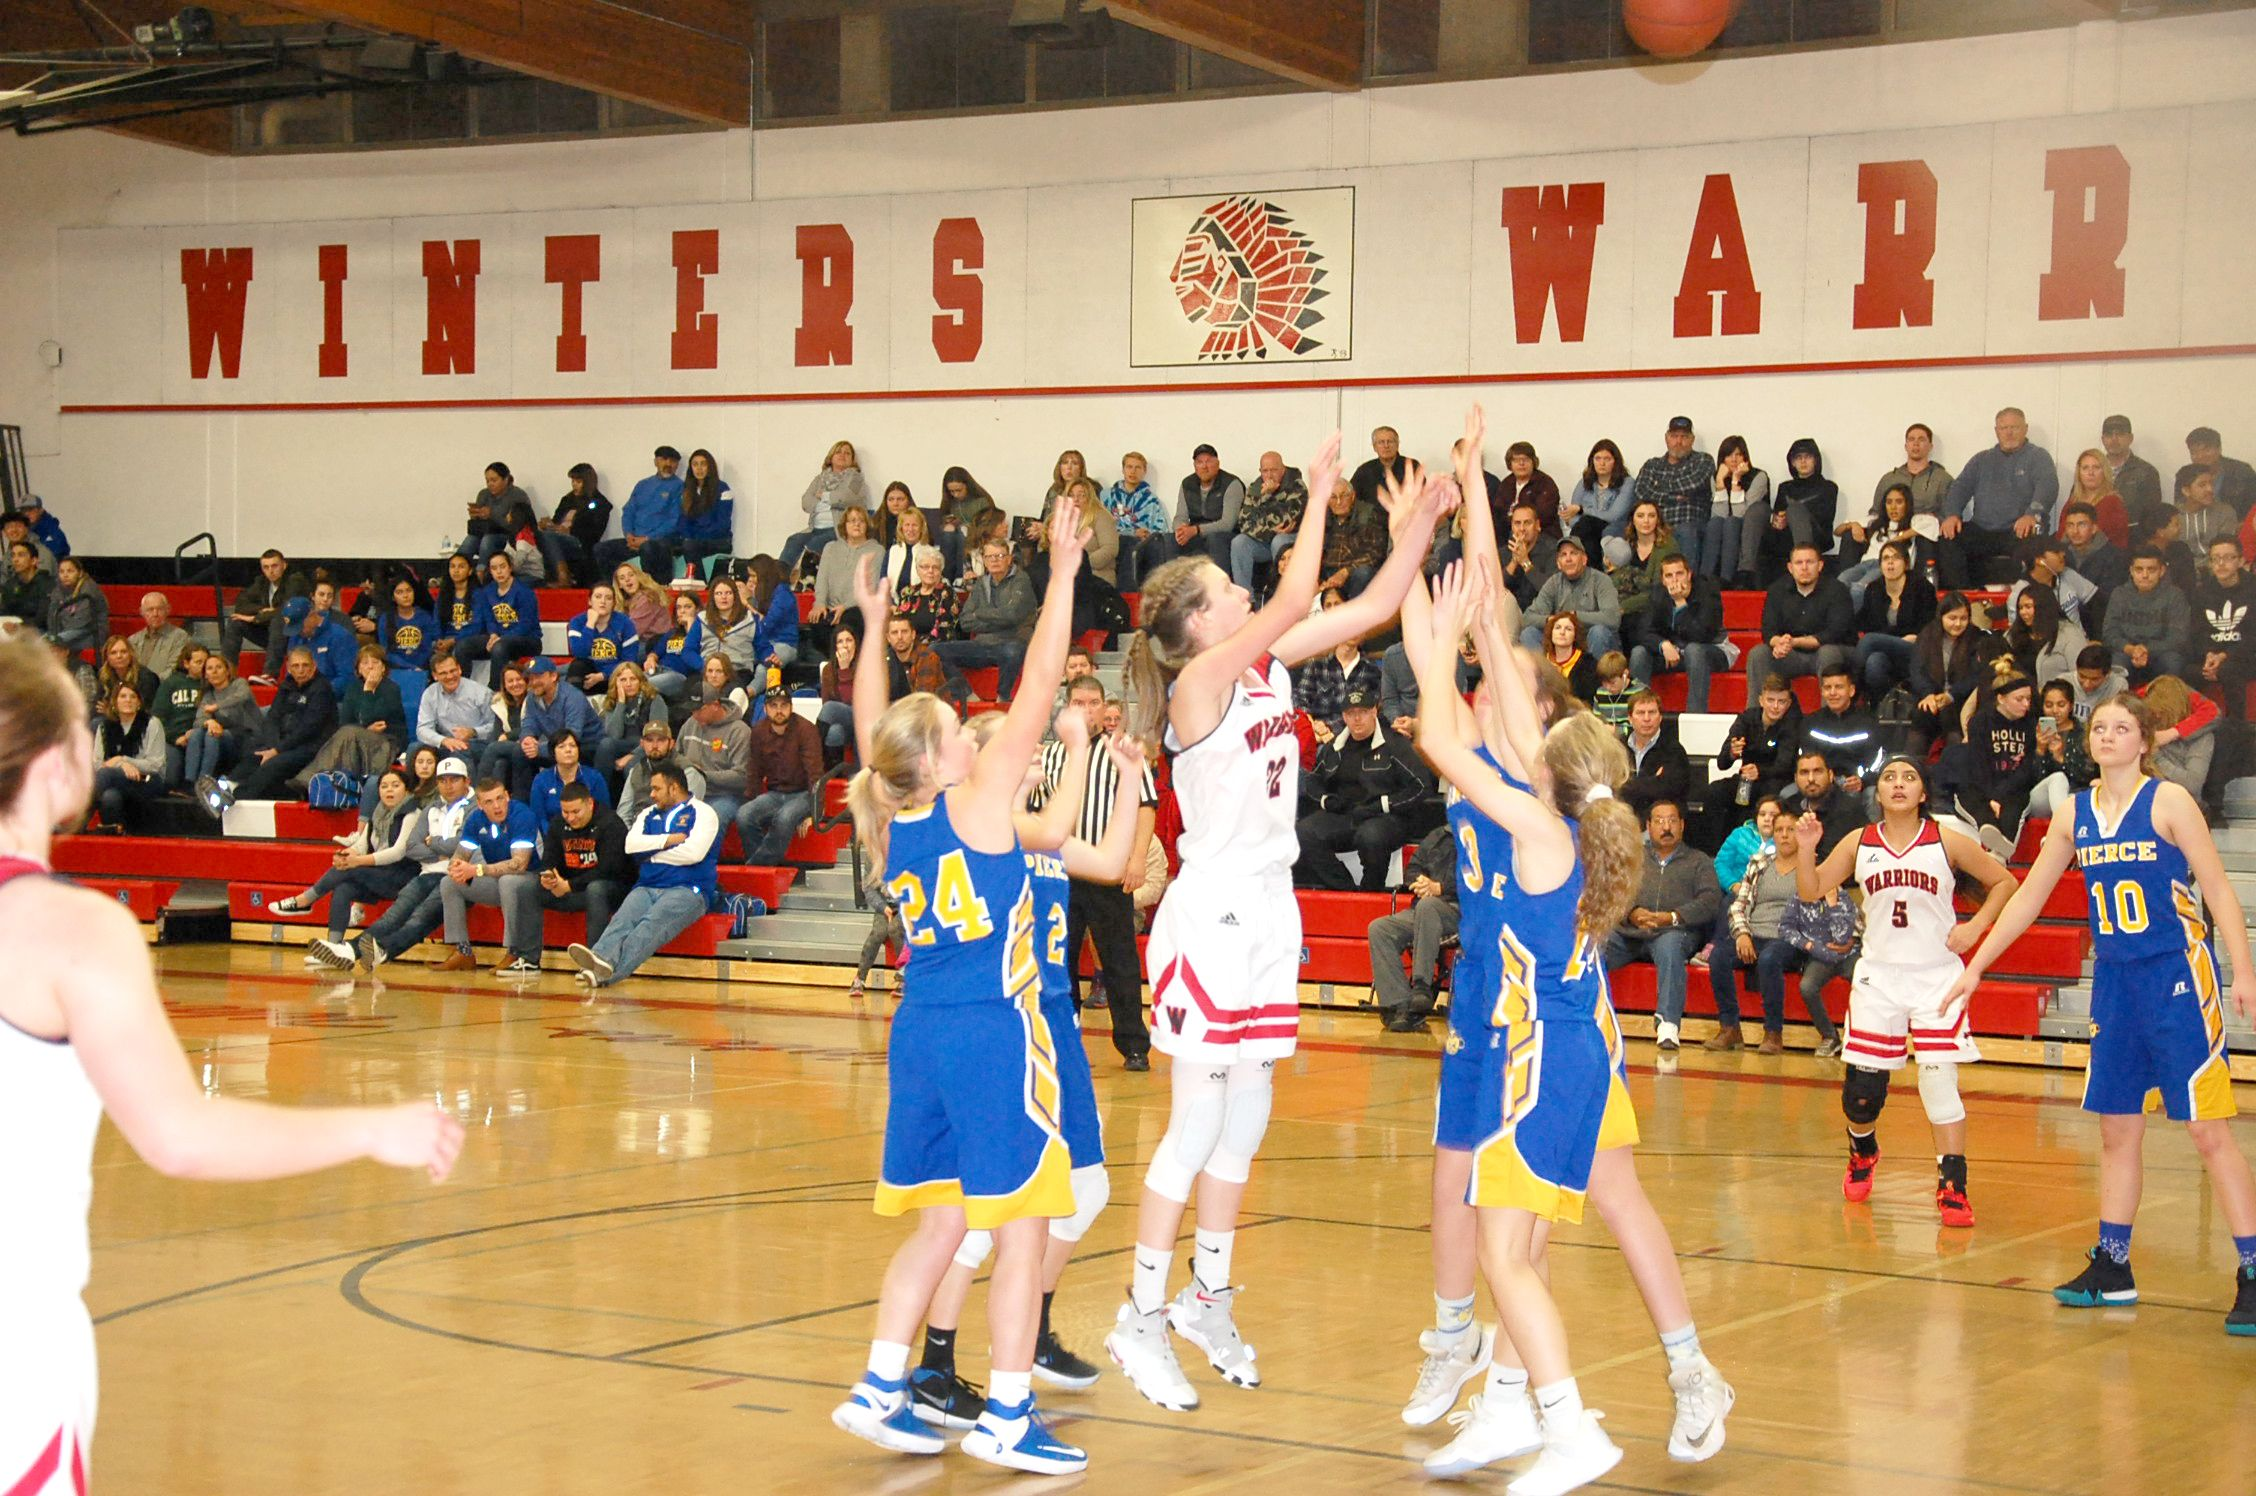 The Winters Warrior Girls Varsity Basketball Team Rebounded From A Close Loss Versus Live Oak On Tuesday Jan With Images Warriors Basketball Warrior Girl Basketball Teams